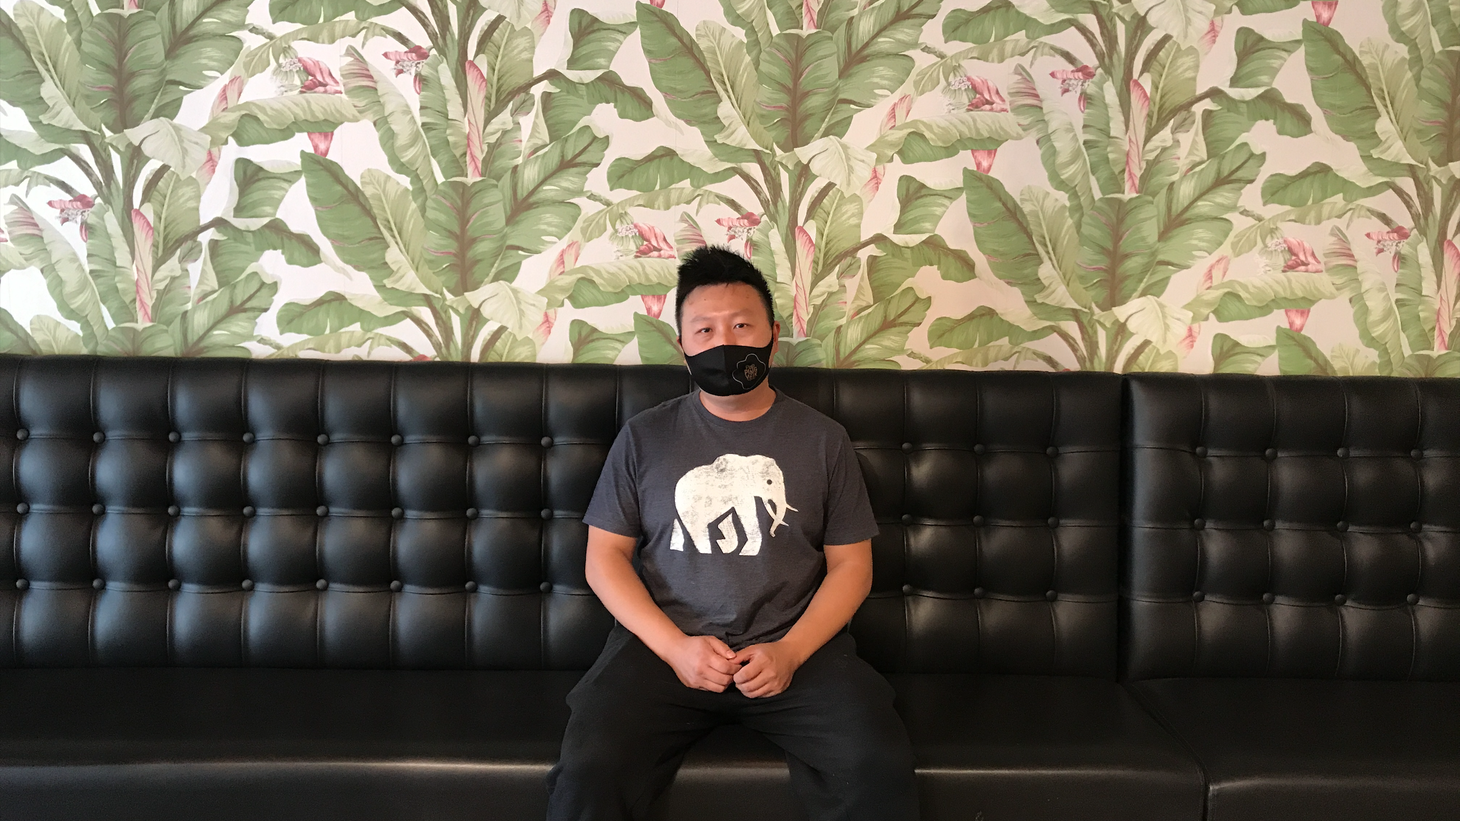 Jason Tsai, owner of Popping Yoke, sits inside his empty dining hall on Main Street in Alhambra. The restaurant has been holding on during the pandemic despite a reduction in profits, but the suspension of indoor dining could be devastating.